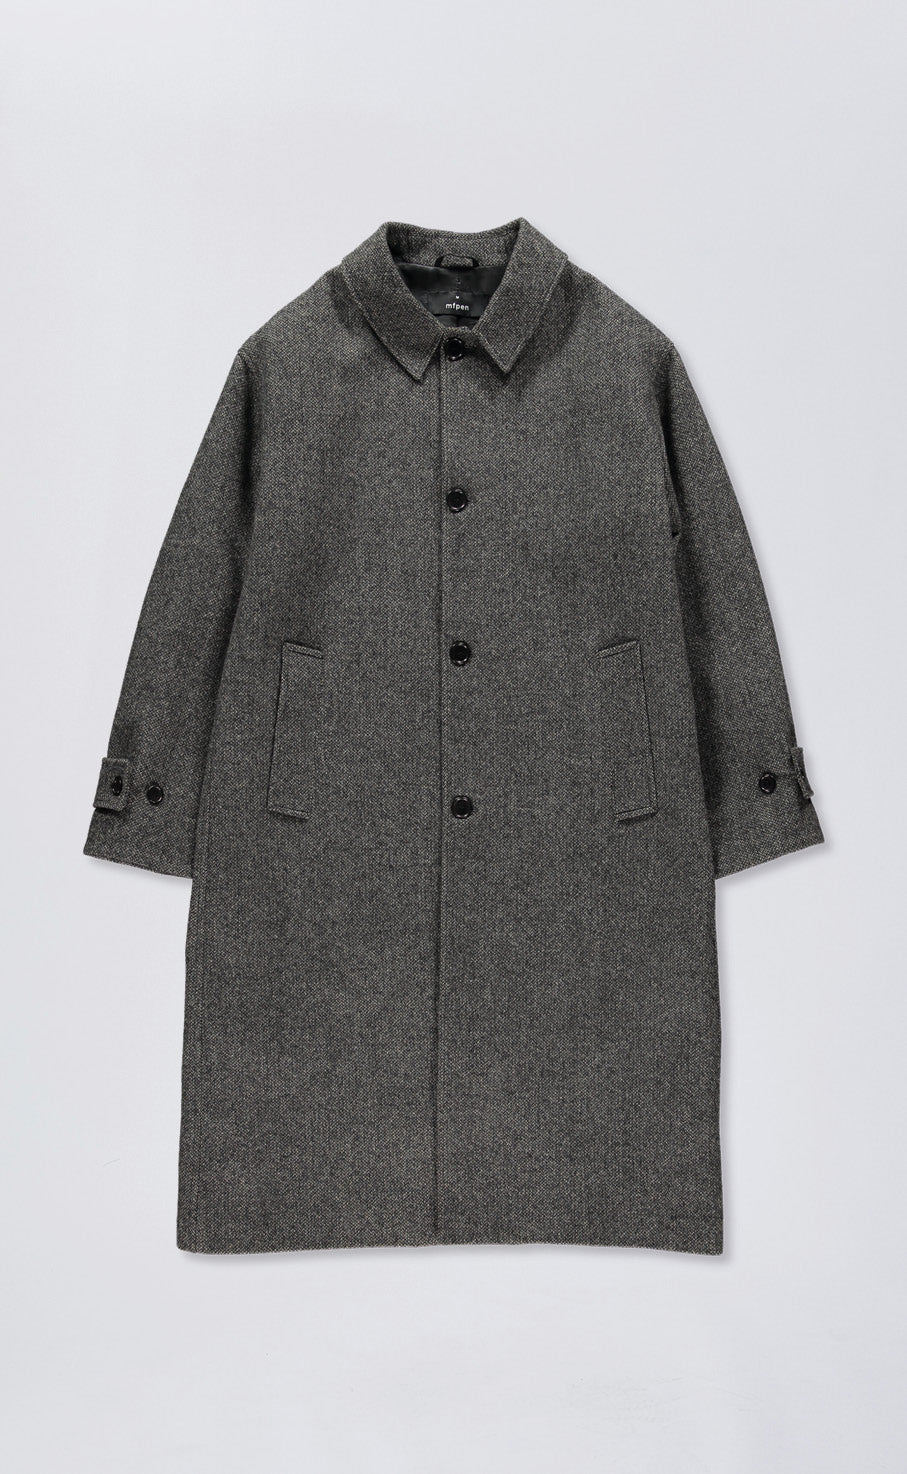 HOLLIS COAT - BLACK/BEIGE